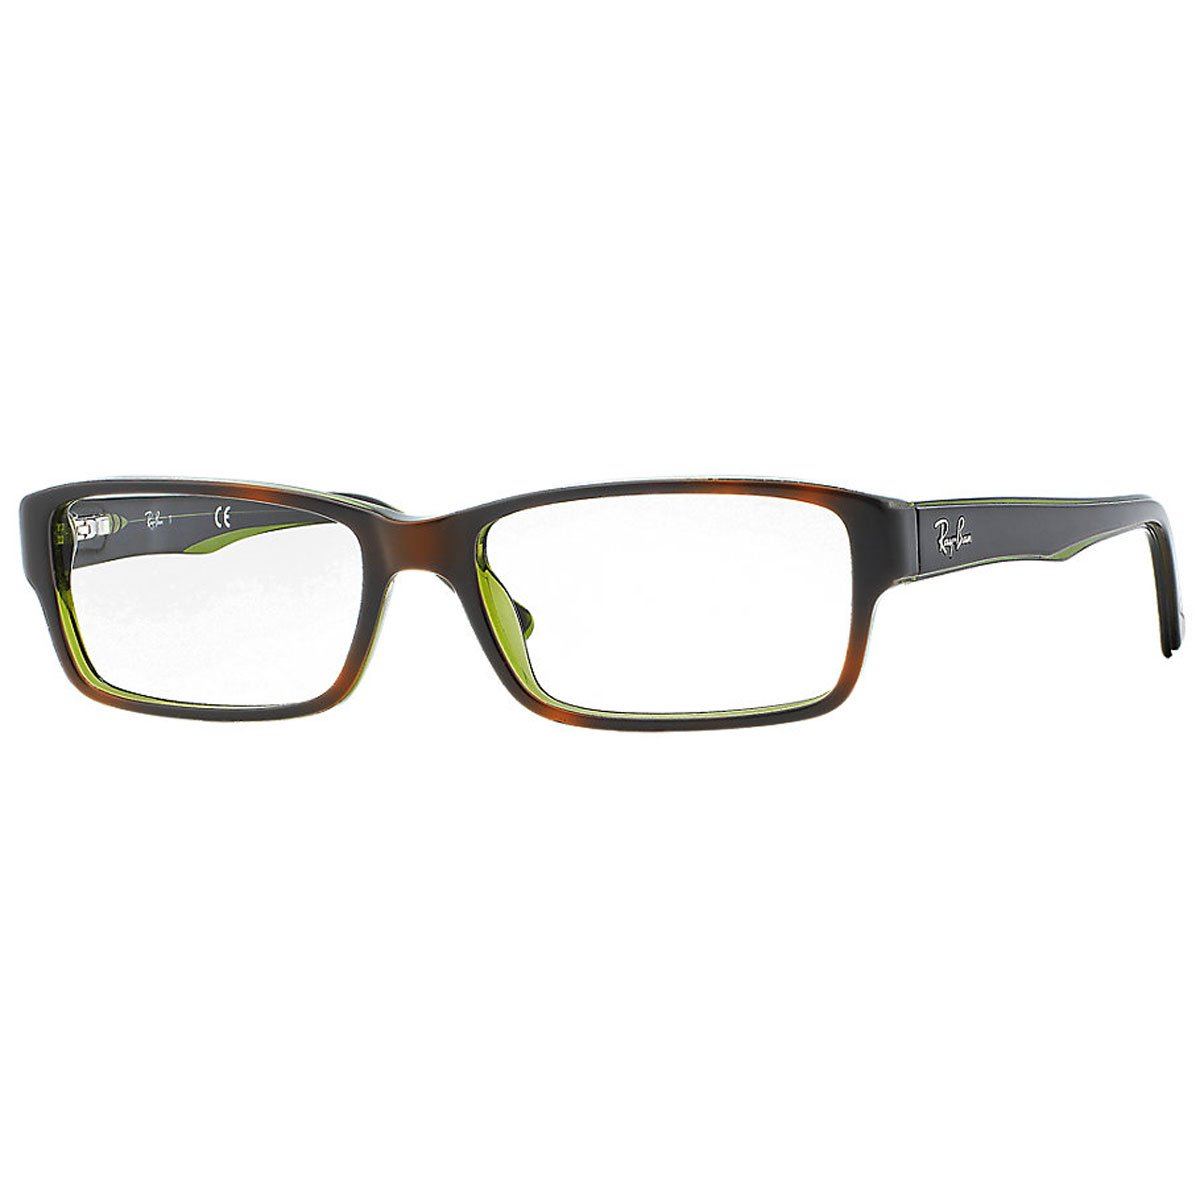 Ray-Ban RX5169 Eyeglasses Top Havana on Green Trans 52mm [Apparel] by Ray-Ban